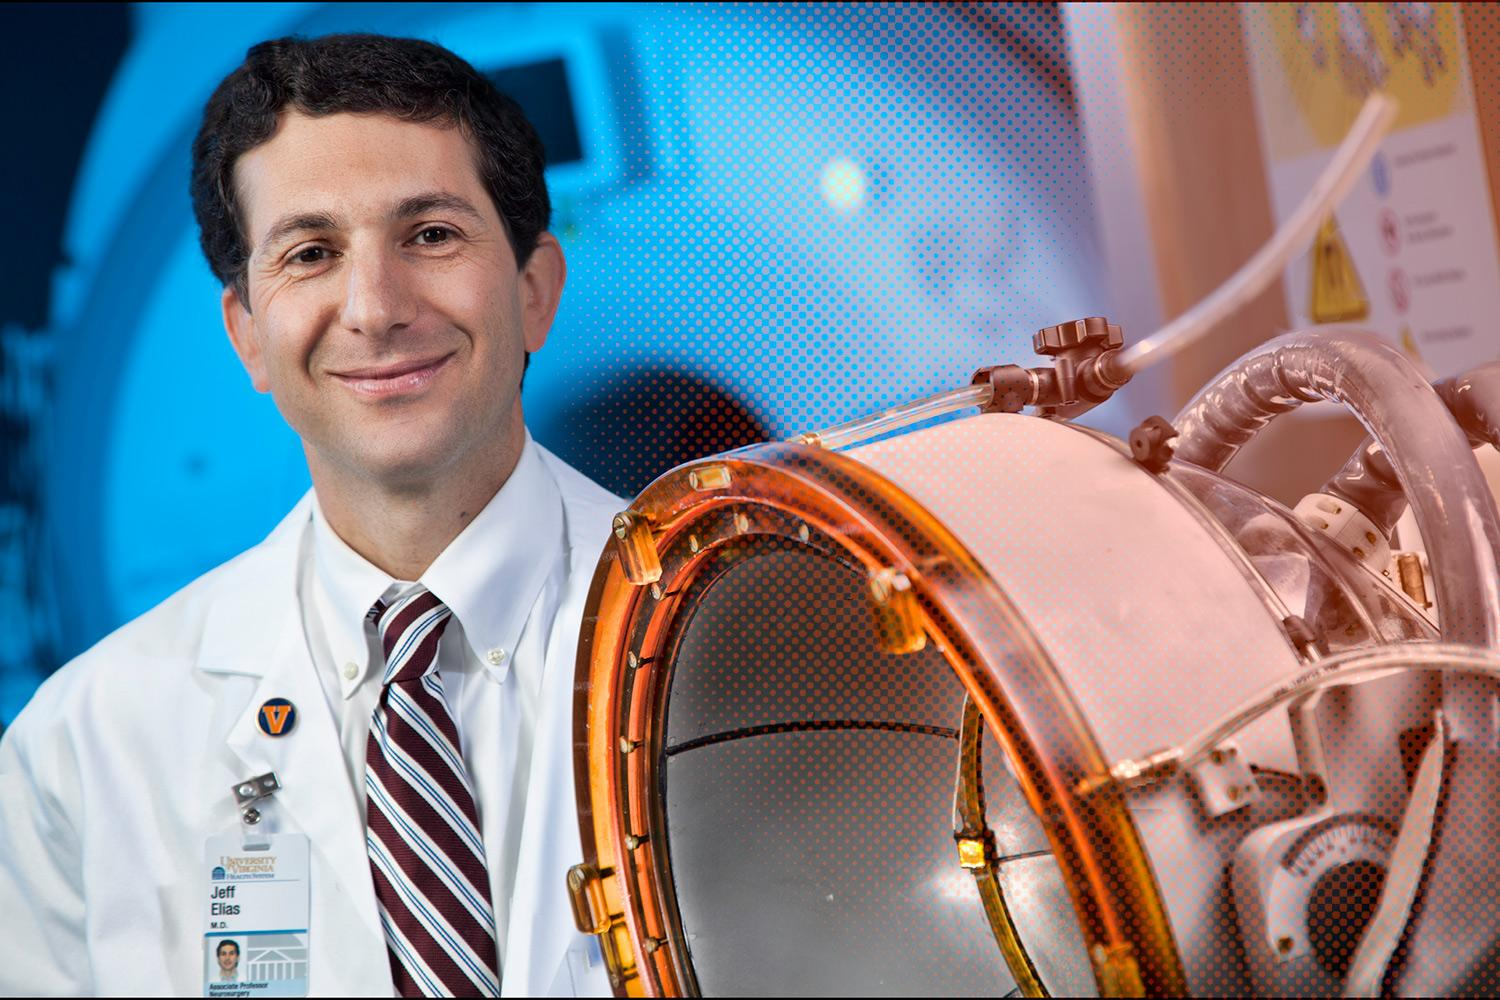 Dr. Jeff Elias led the international clinical trials, which produced dramatic results.